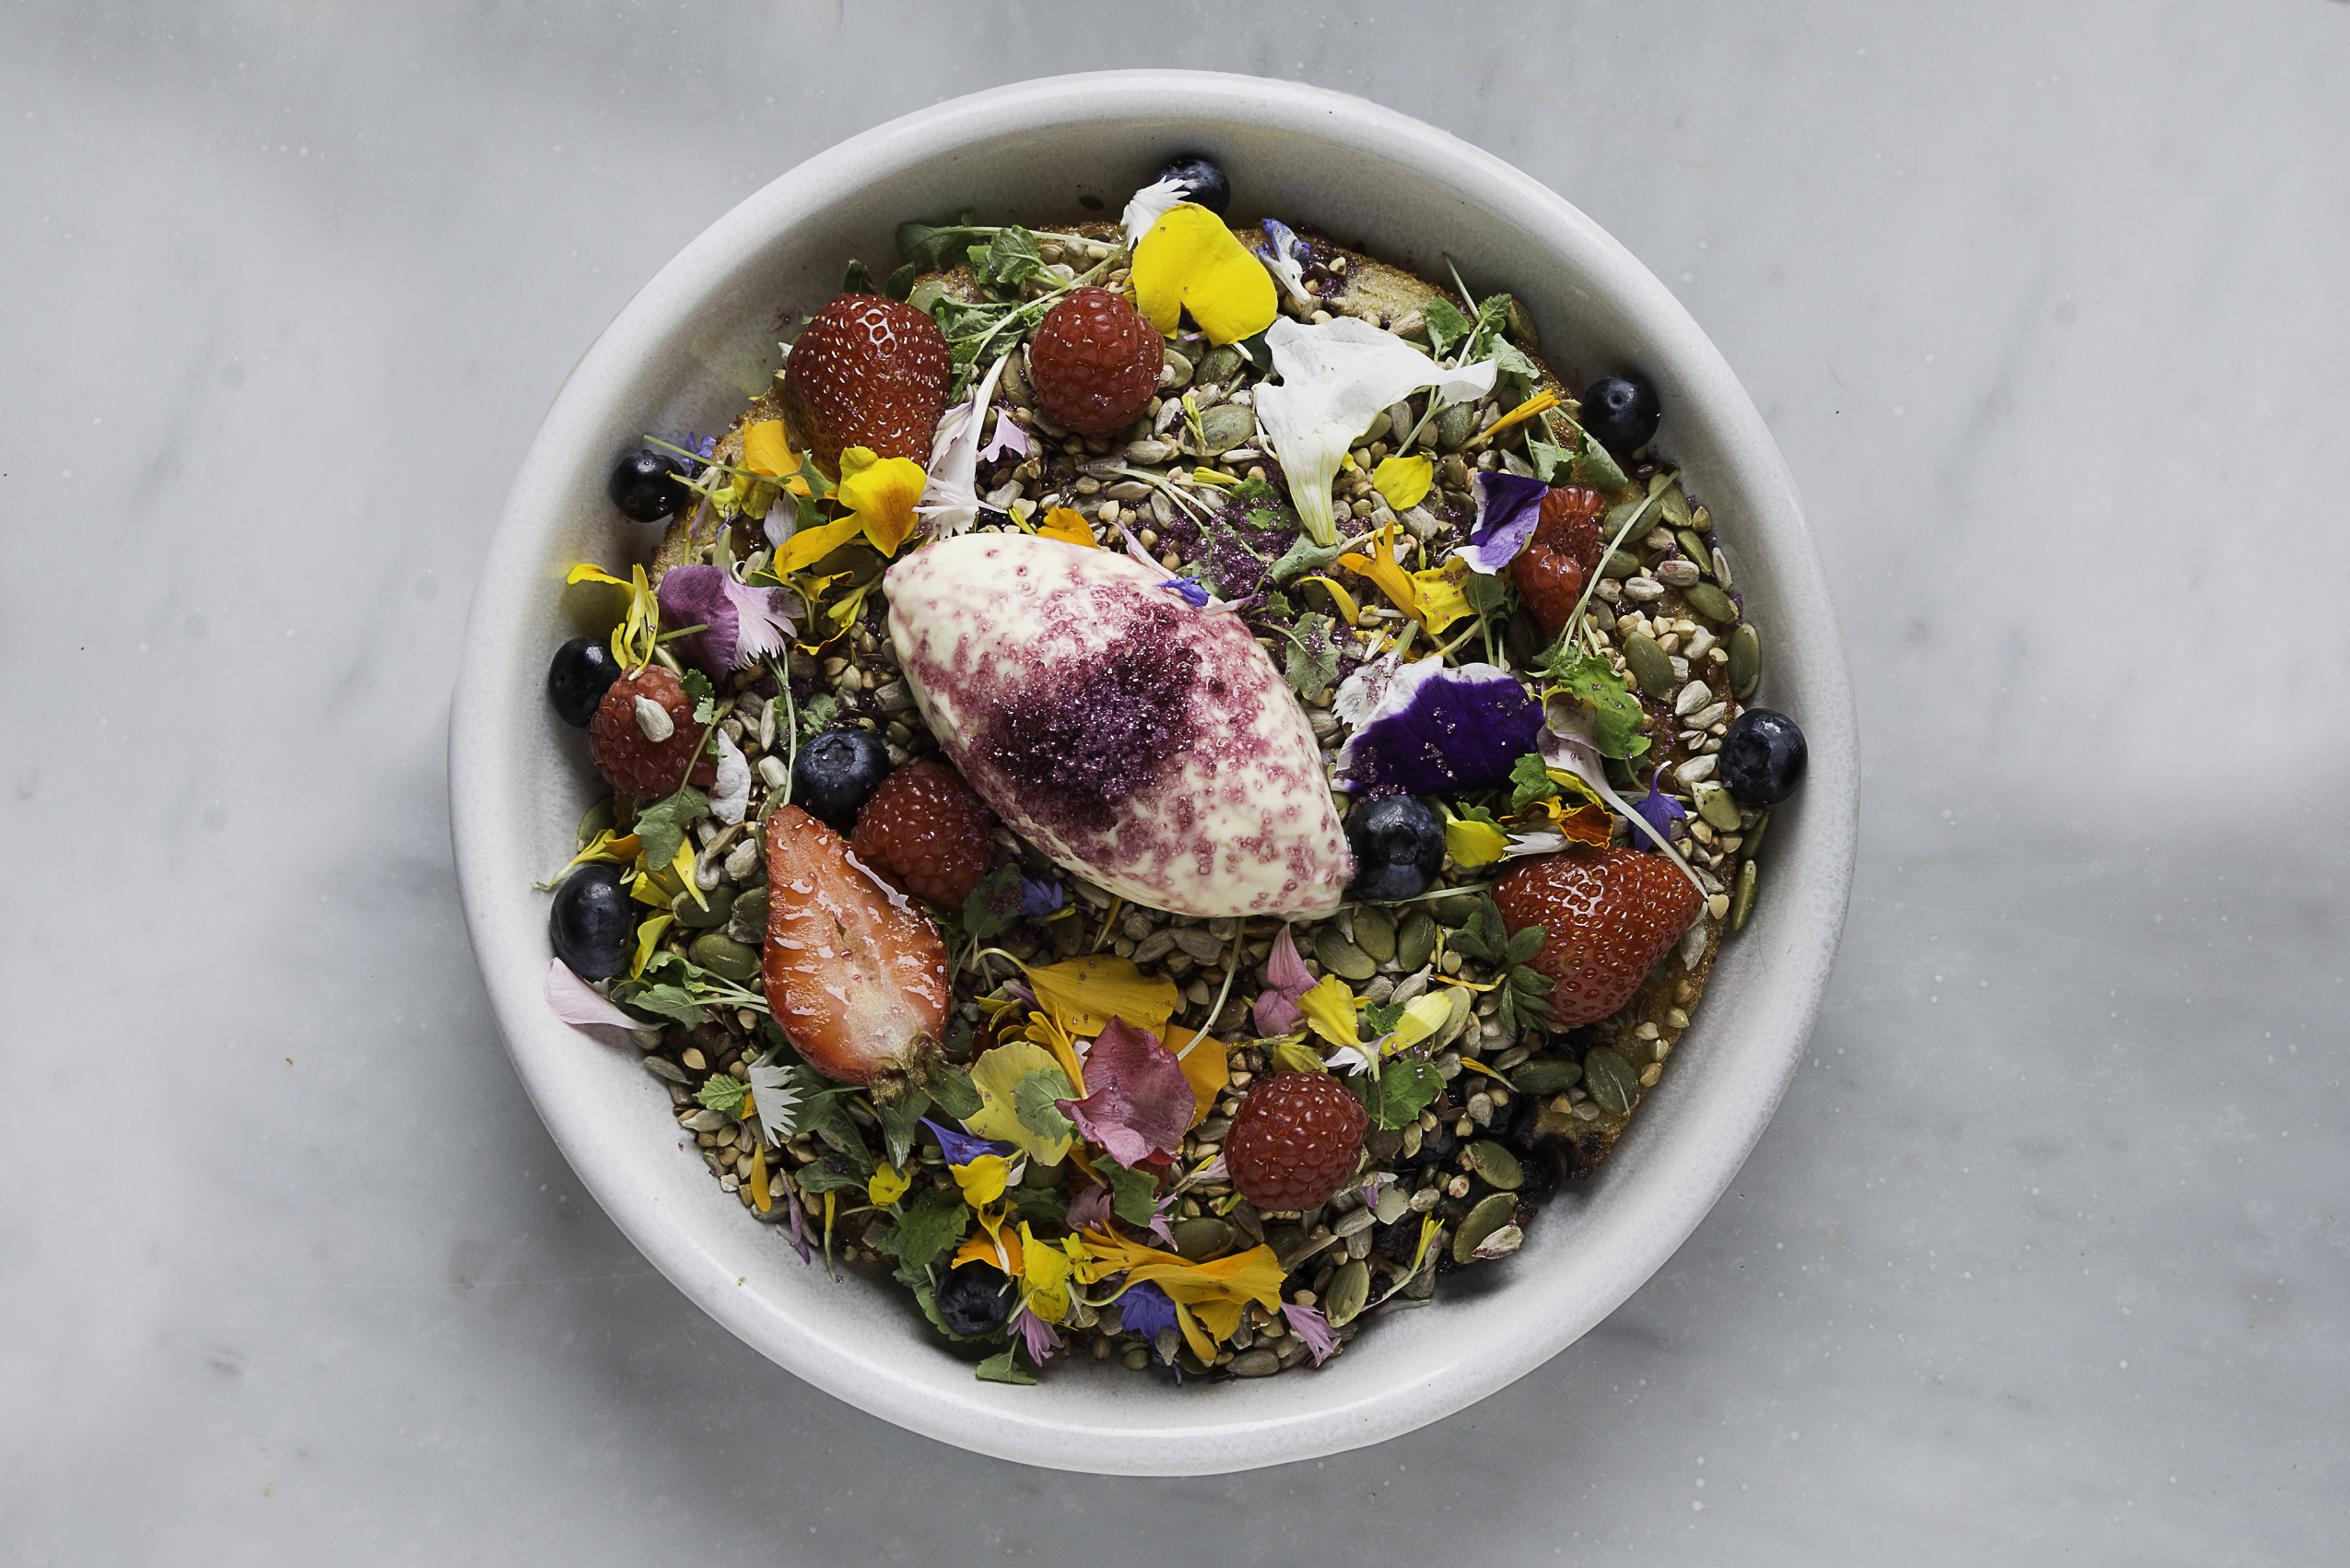 On a marble countertop, a bowl is filled with a hotcake topped with seeds, flowers, sliced strawberries and a dollop of cream